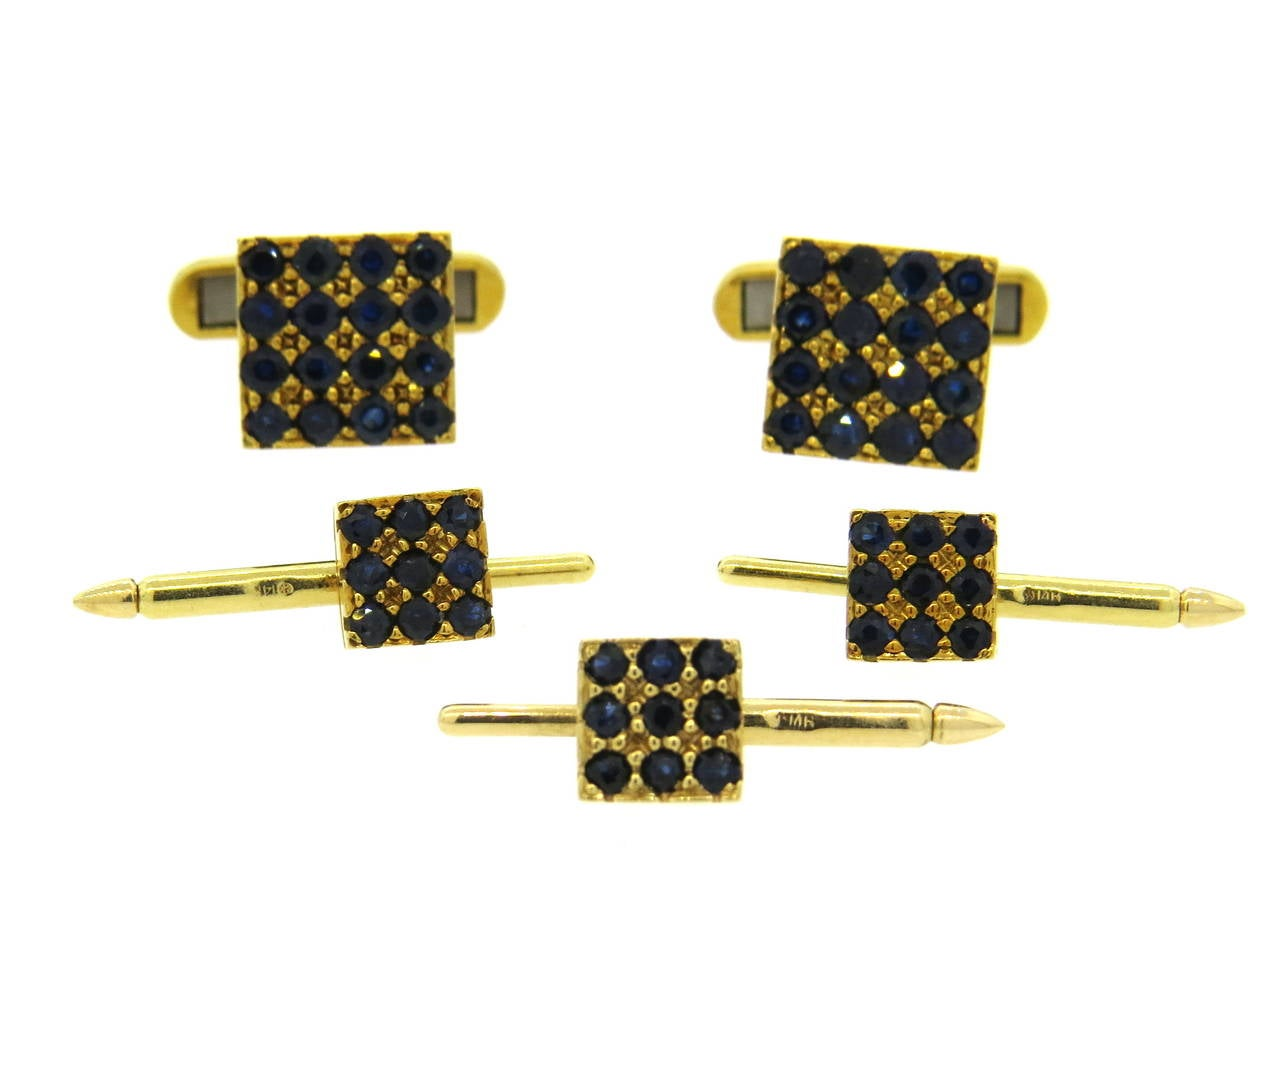 1960s Sapphire Gold Cufflinks Stud Dress Set 3